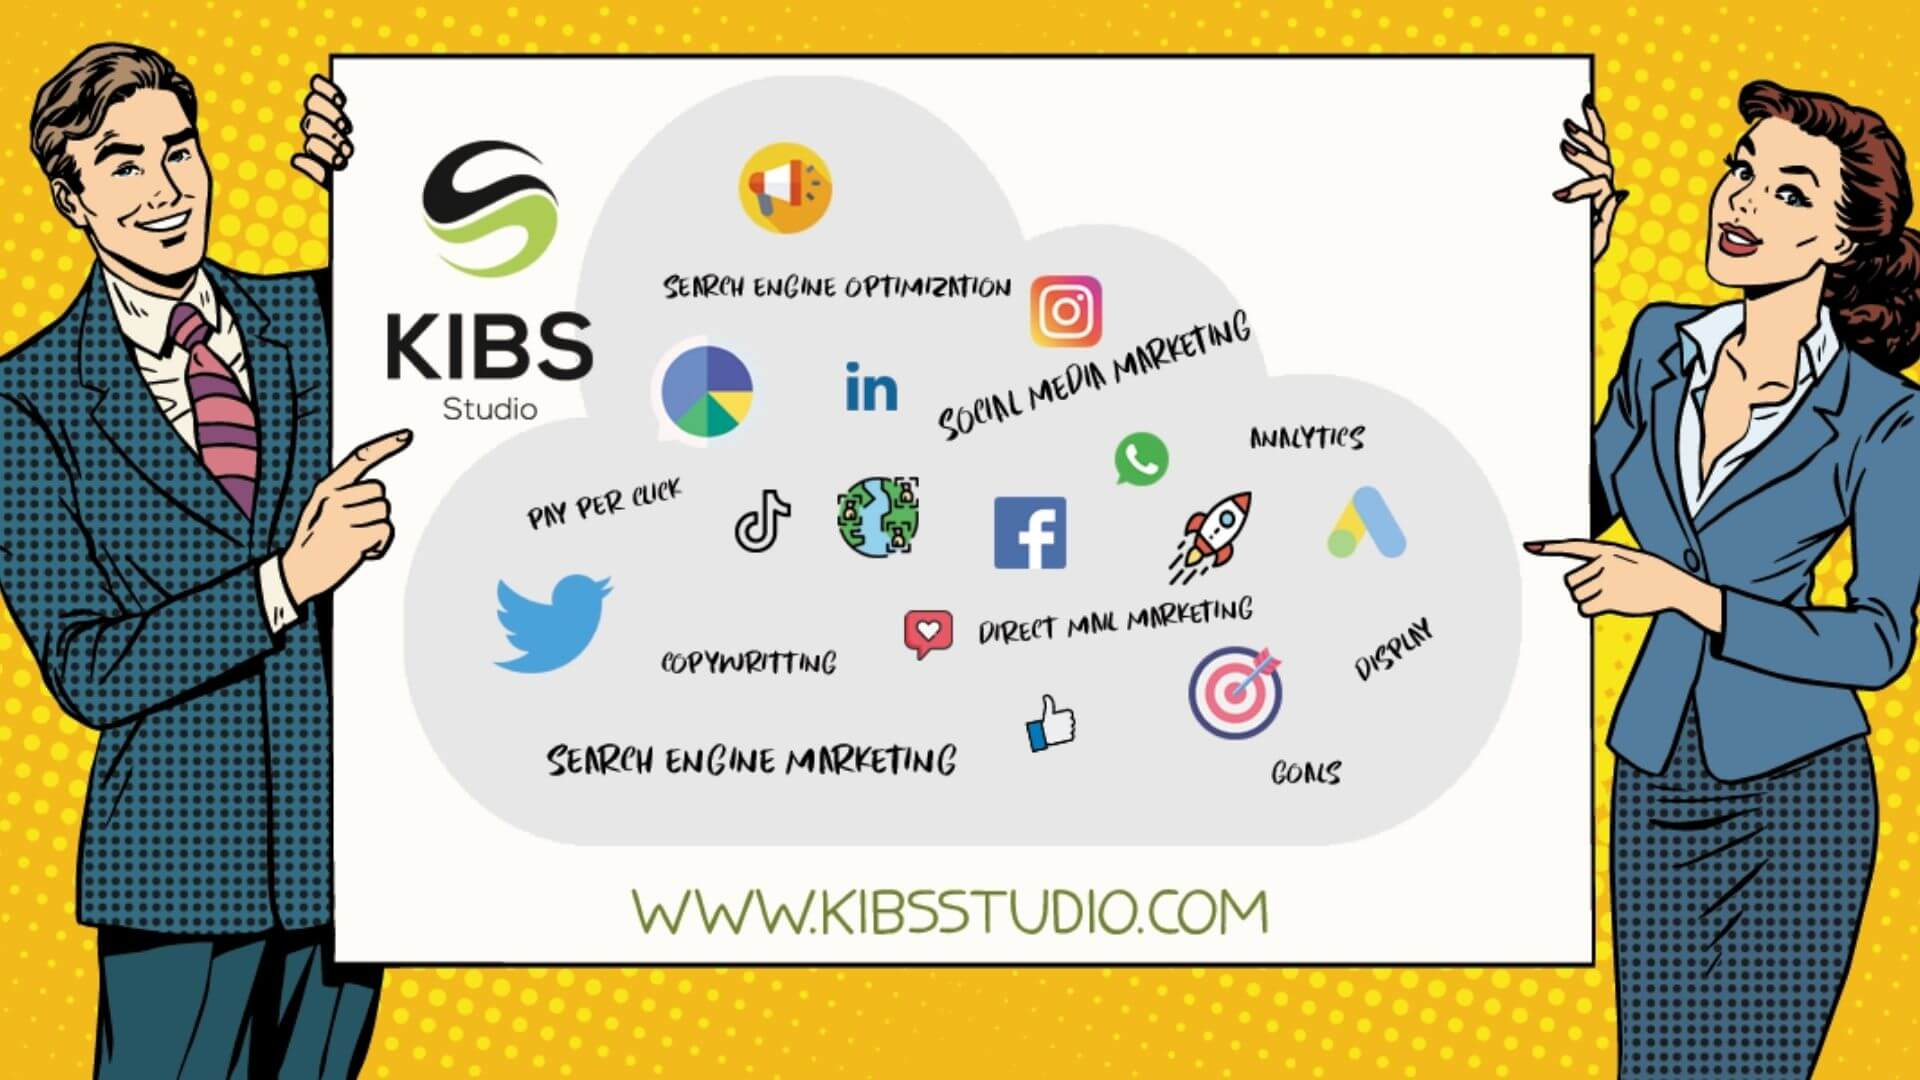 Introduzione all'advertising KIBS Studio